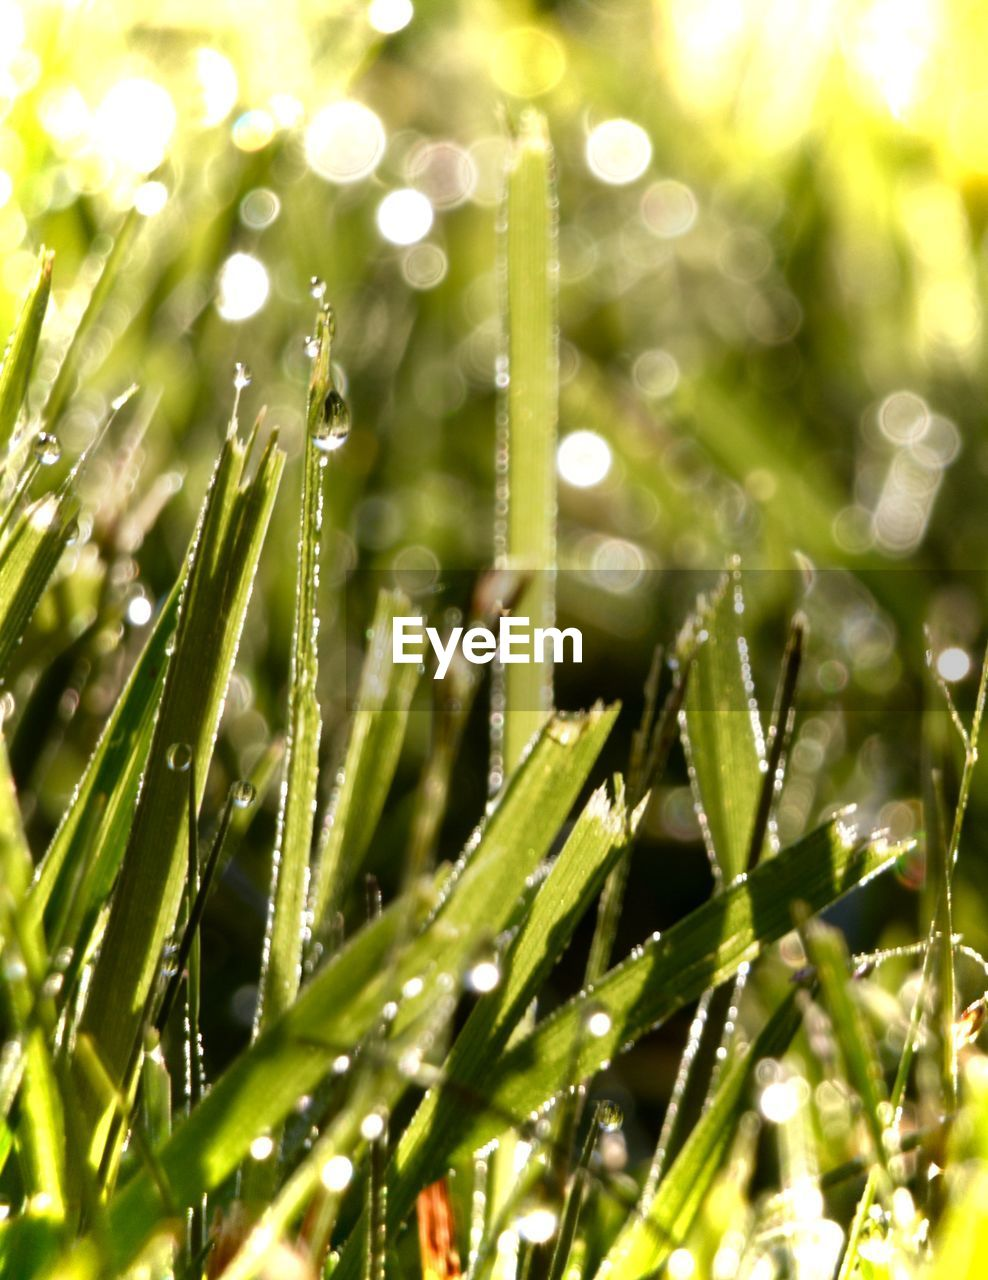 nature, growth, green color, plant, beauty in nature, drop, freshness, water, outdoors, close-up, no people, wet, fragility, day, grass, raindrop, purity, frond, needle